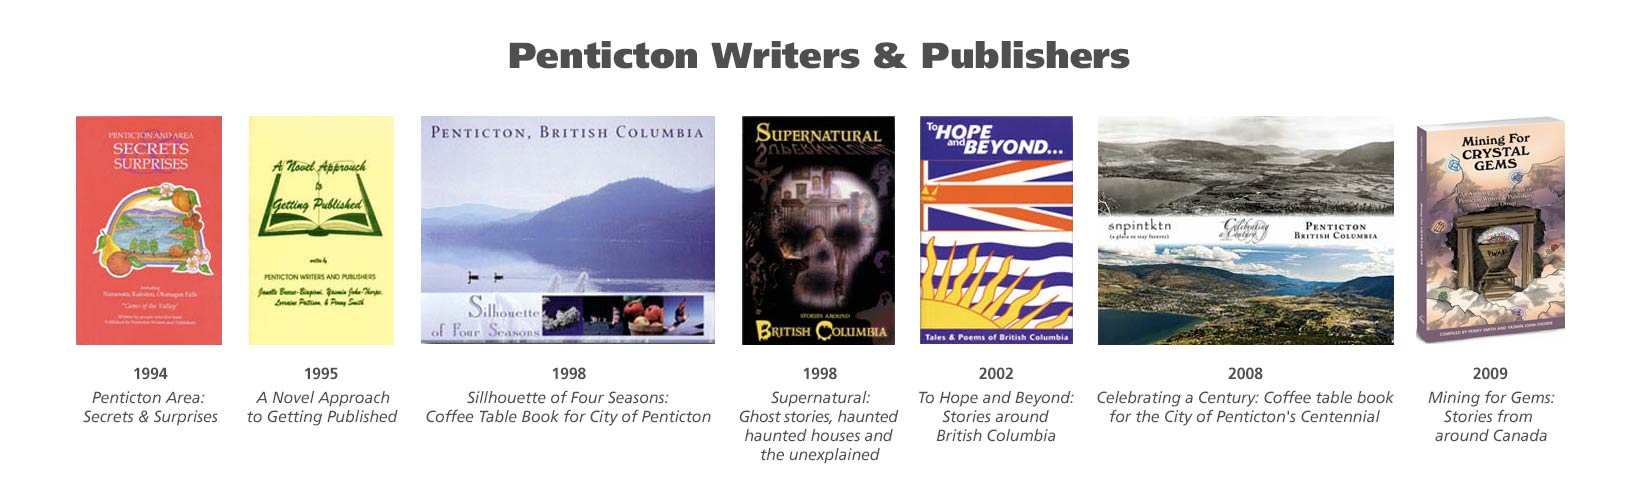 Penticton Writers & Publishers